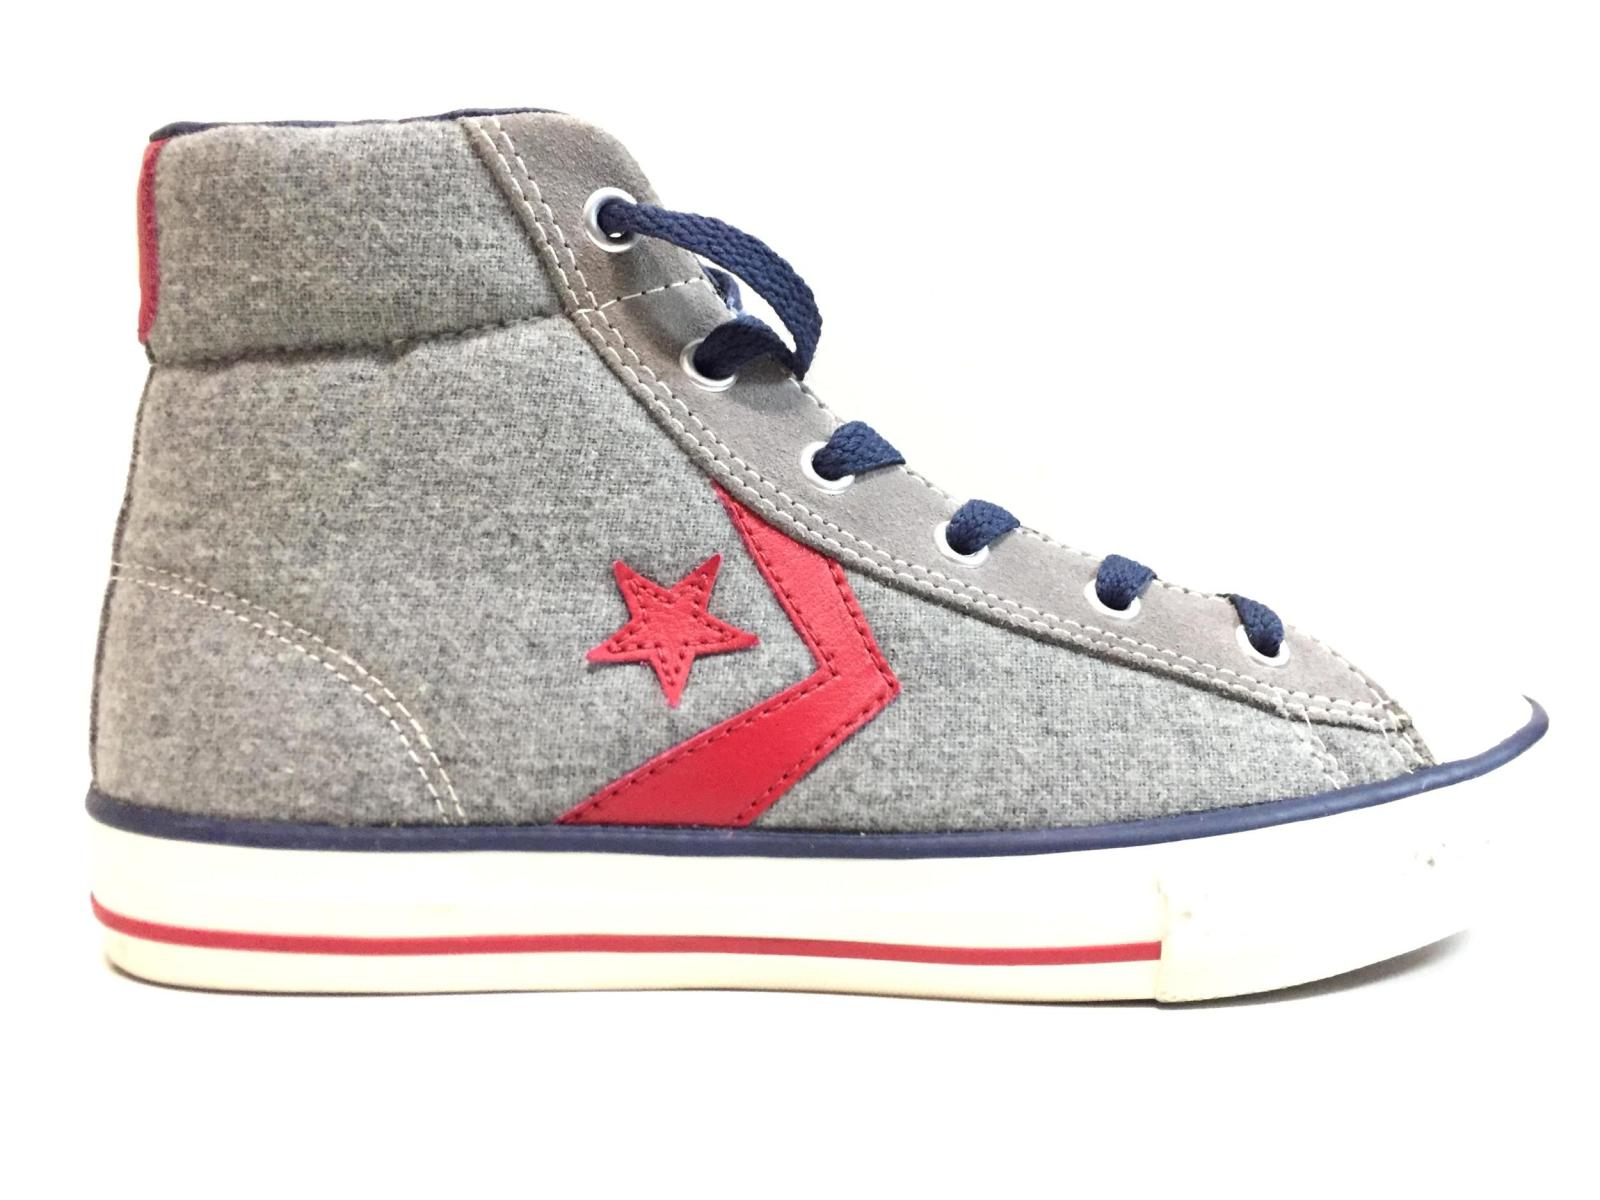 SCARPE SNEAKERS DONNA CONVERSE ALL STAR PLAYER WOOL 635140C LANA GREY ORIGINALE